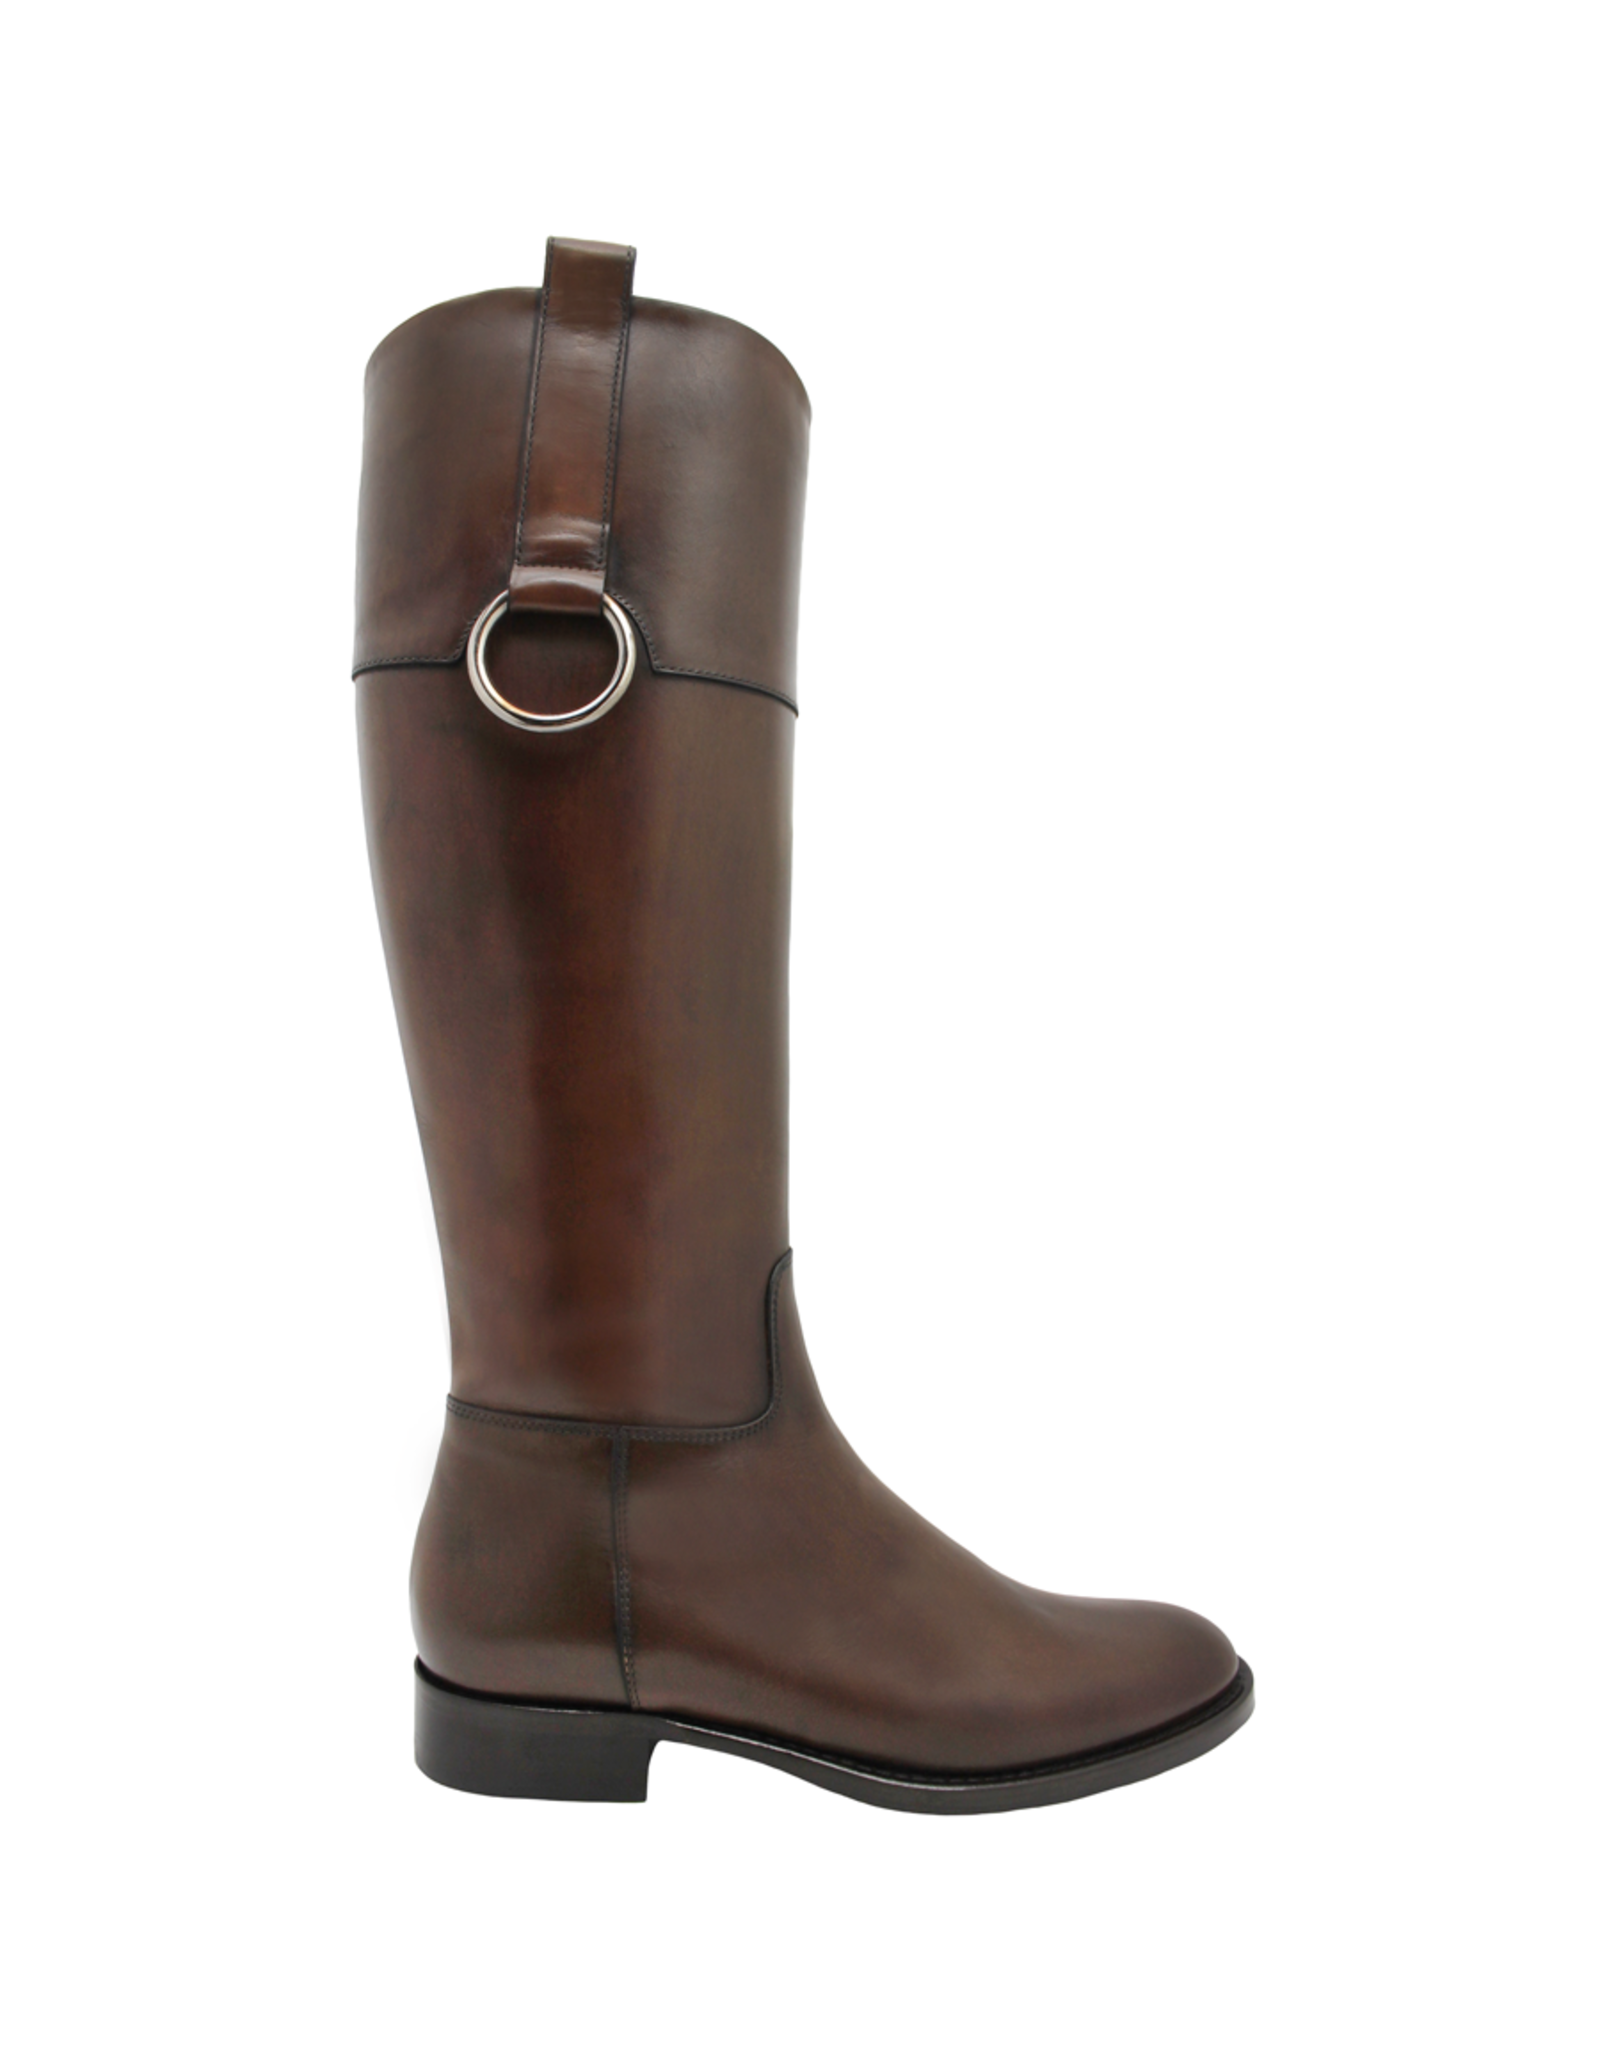 Eclat Eclat Whiskey Riding Boot W/ Ring Detail+ Full Inside Zipper 7603